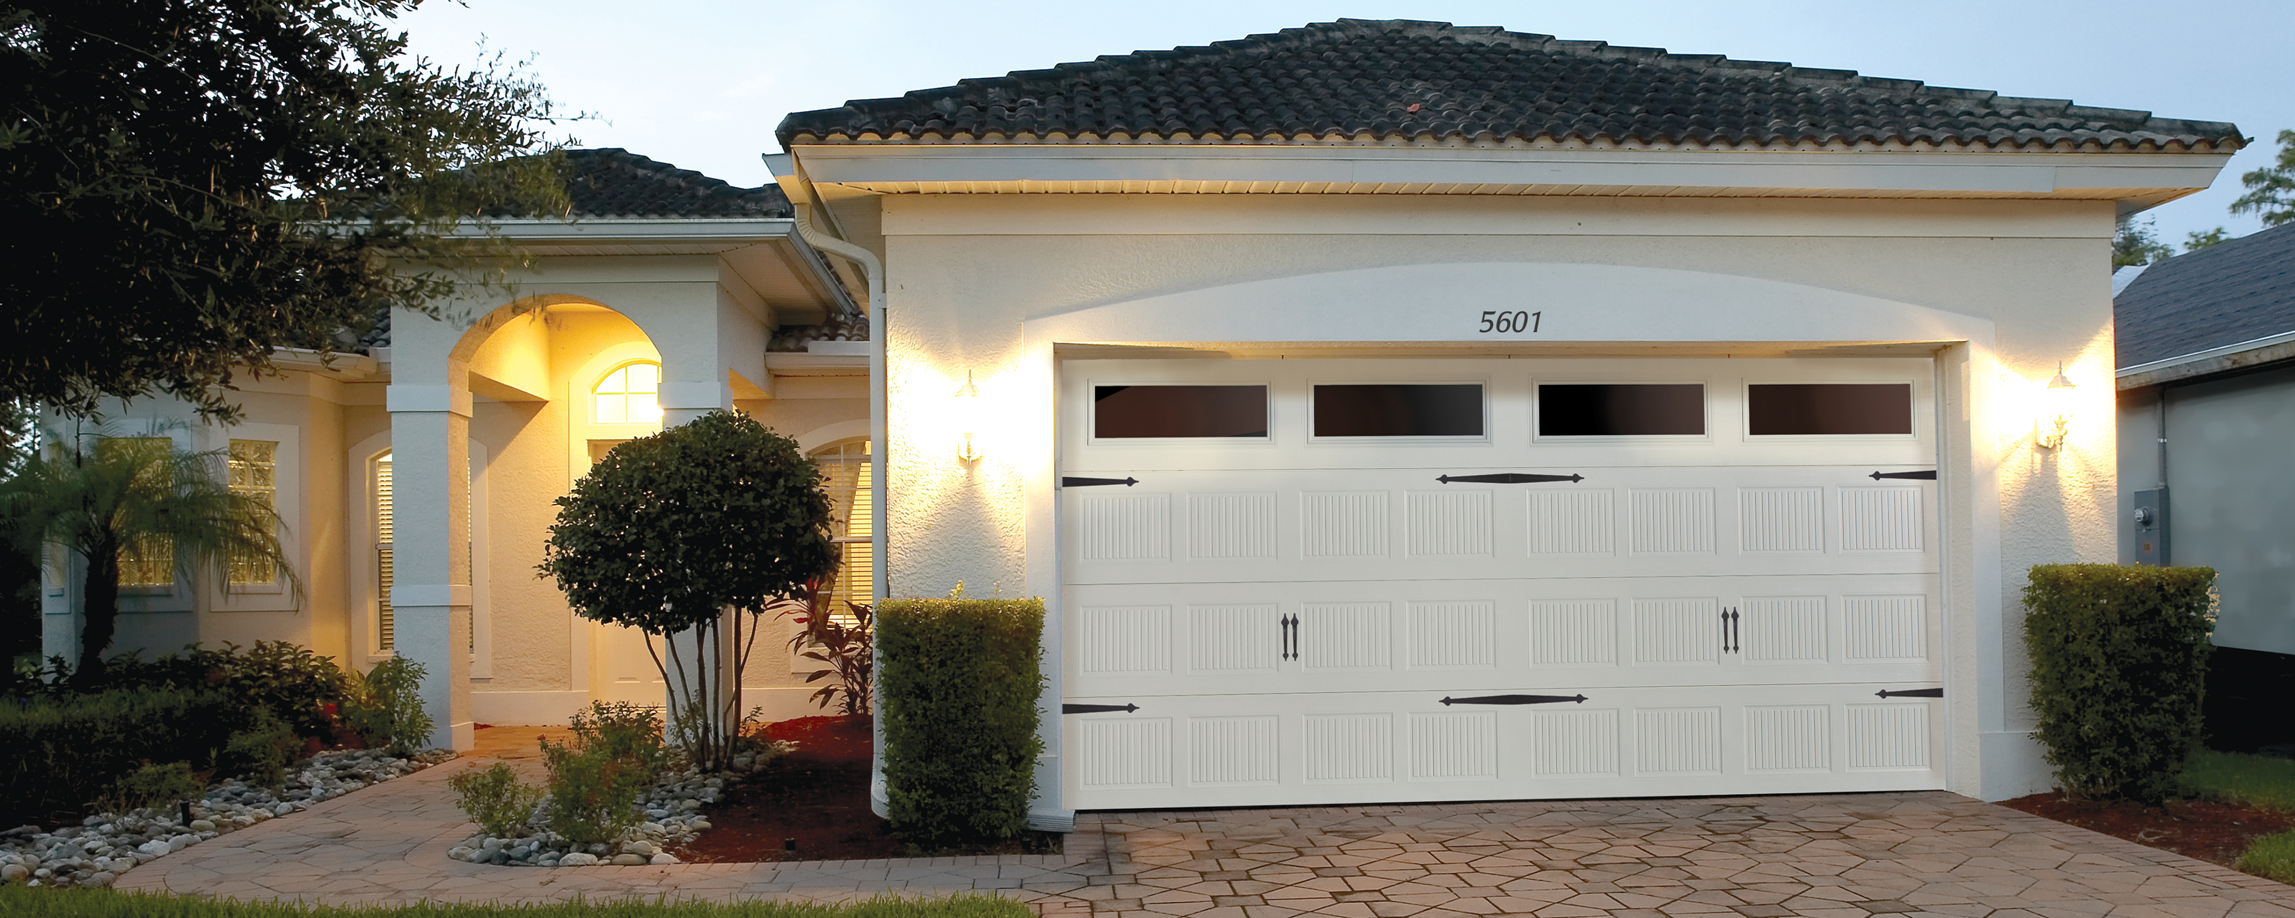 Overhead Door Company Of Charlotte Offers Garage Door Repair Services,  Installation U0026 Maintenance At Affordable Rates Throughout Charlotte Area,  ...